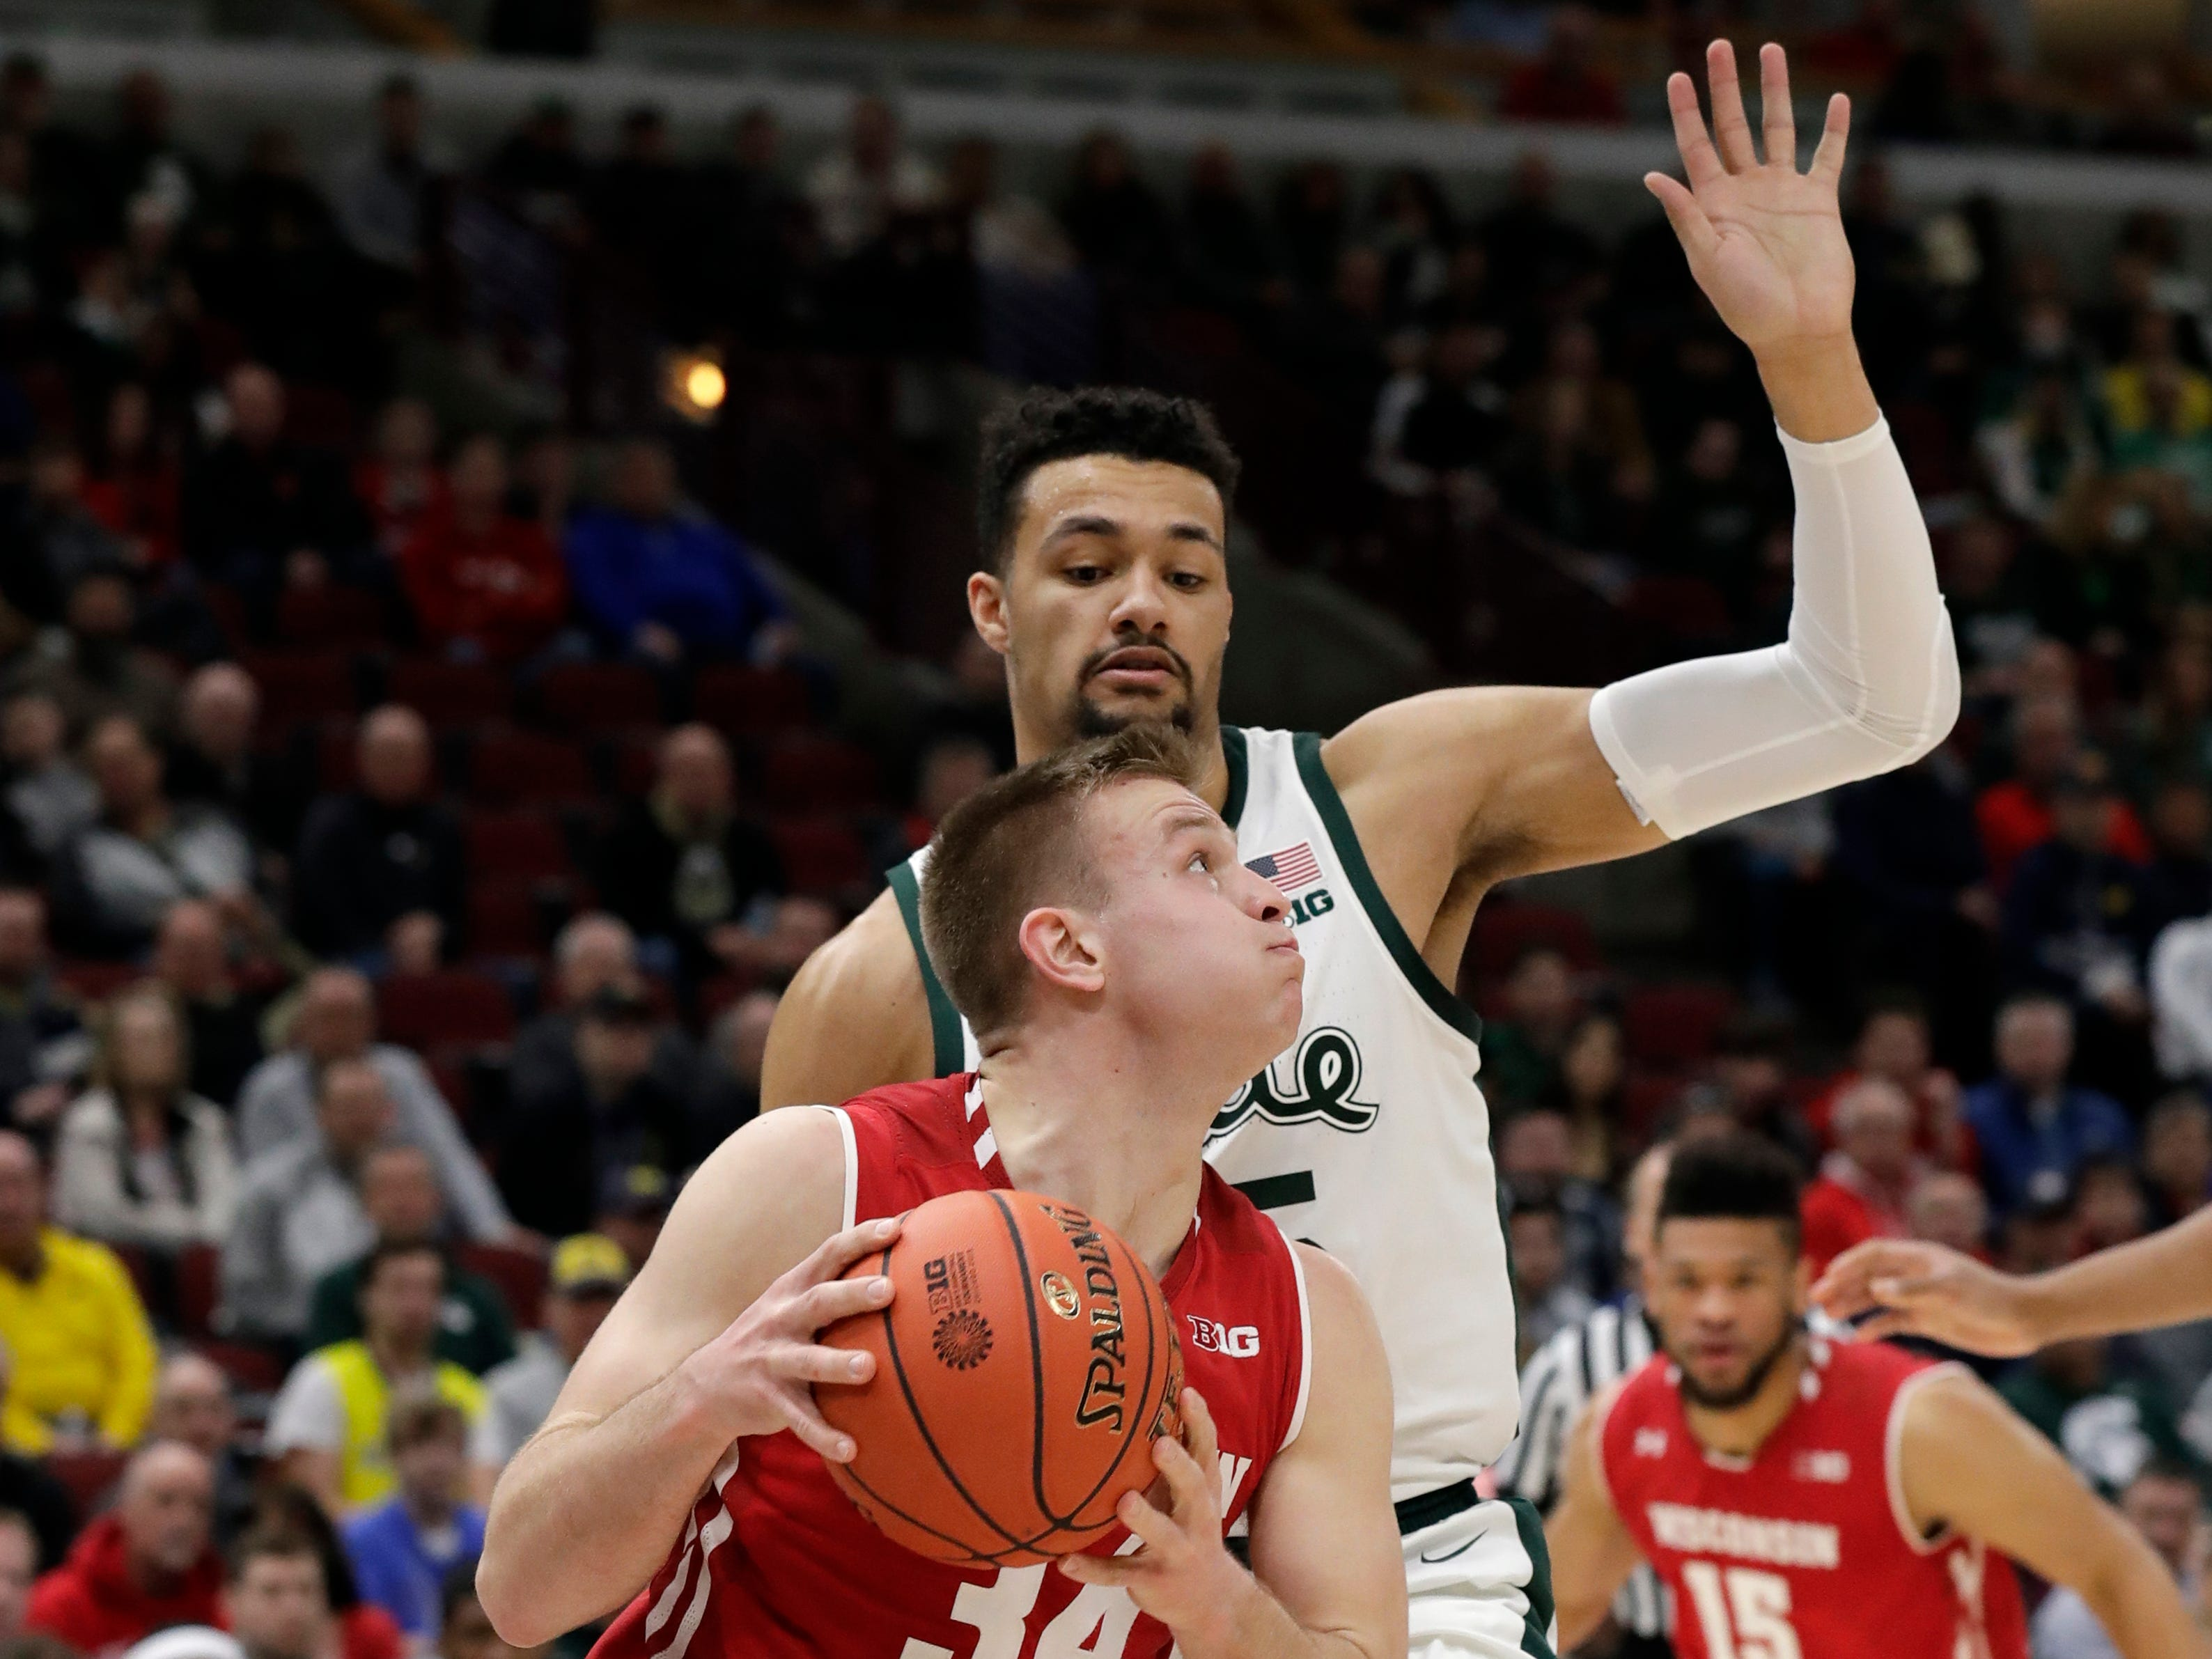 Wisconsin's Carter Higginbottom drives against Michigan State's Kenny Goins during the first half.